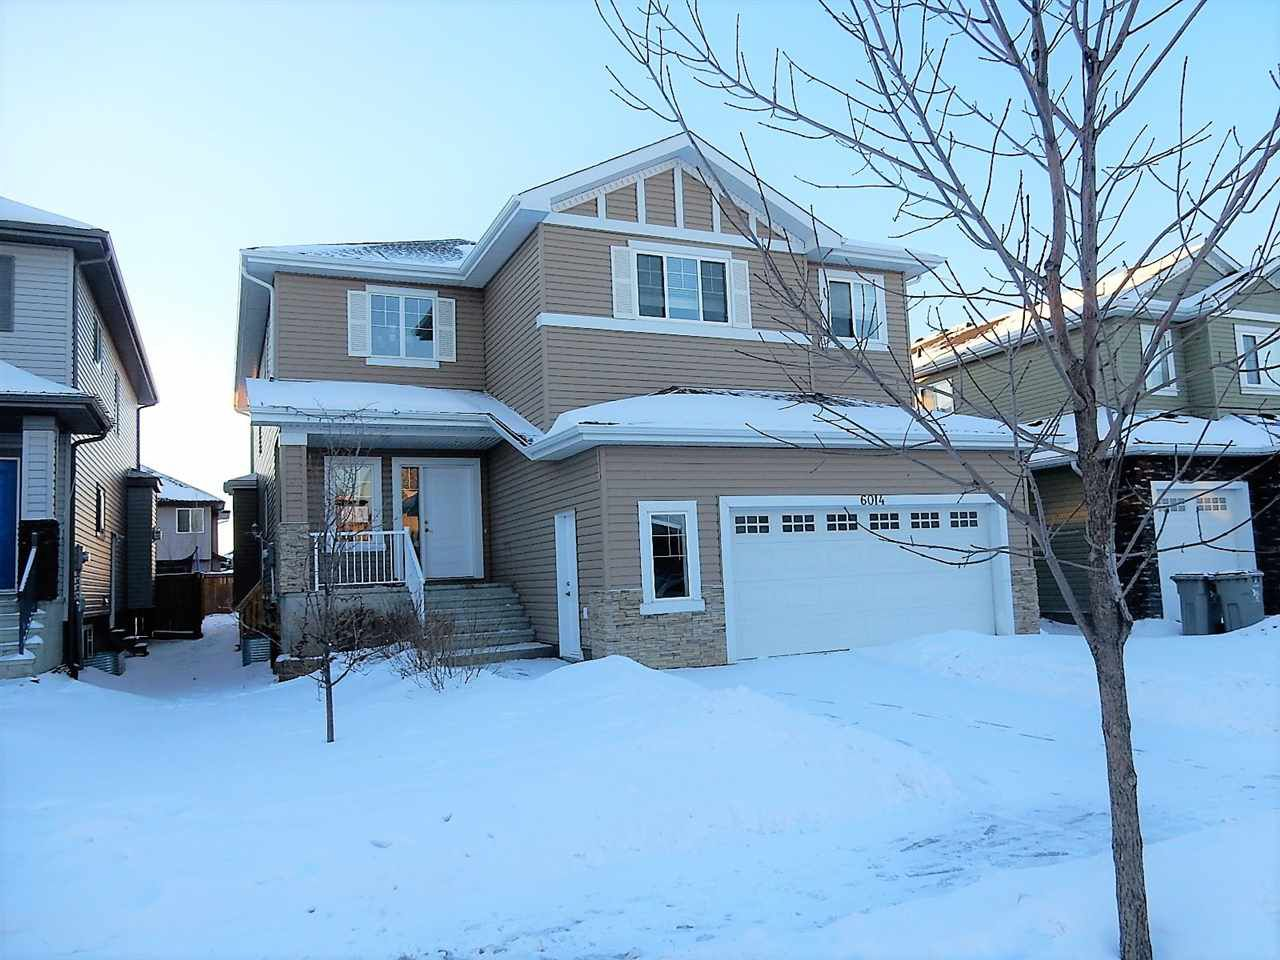 Main Photo: 6014 60 Street: Beaumont House for sale : MLS®# E4144272